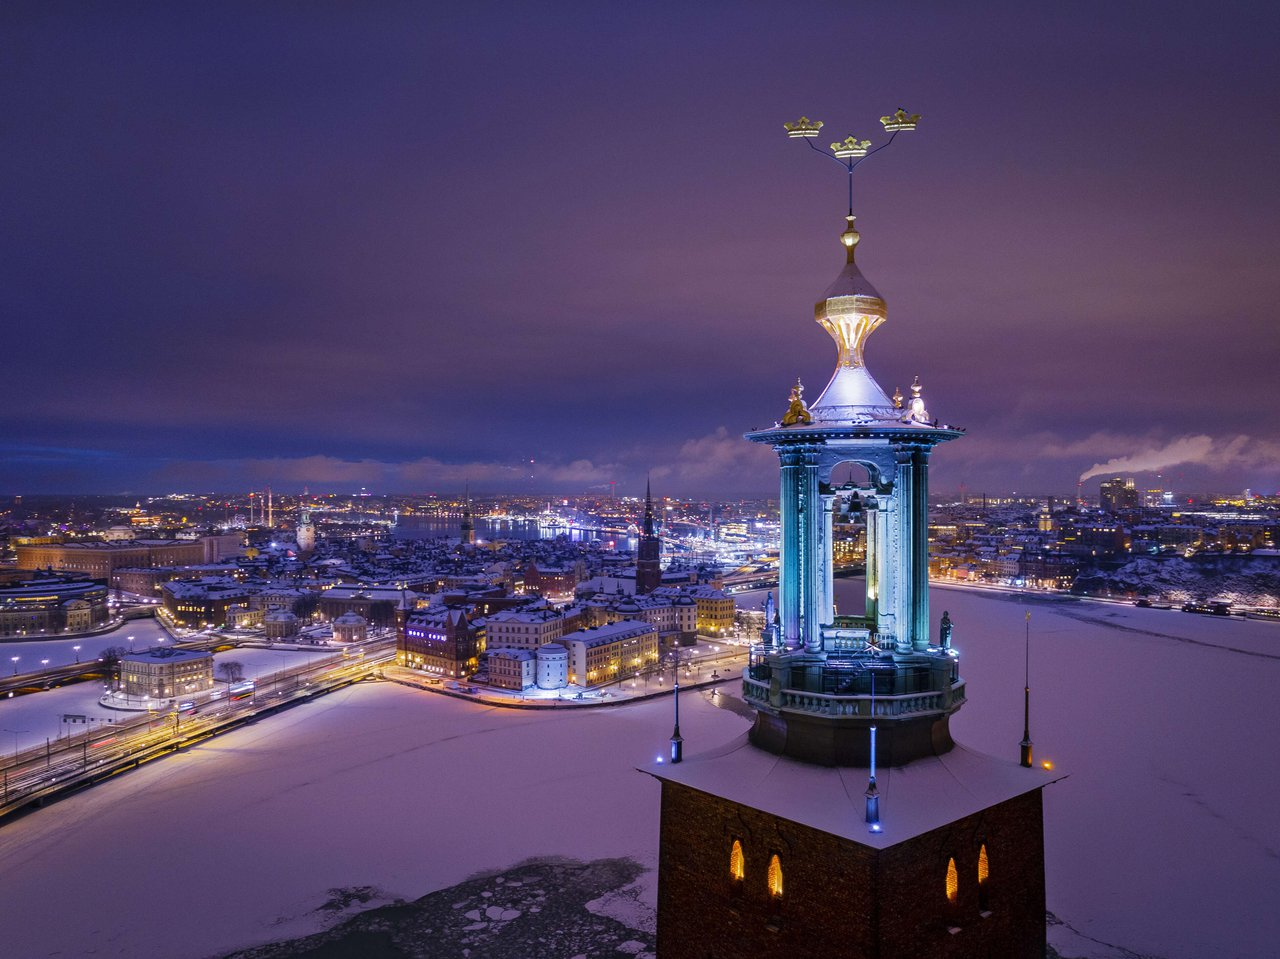 Stockholm covered in snow, with City Hall in the foreground.